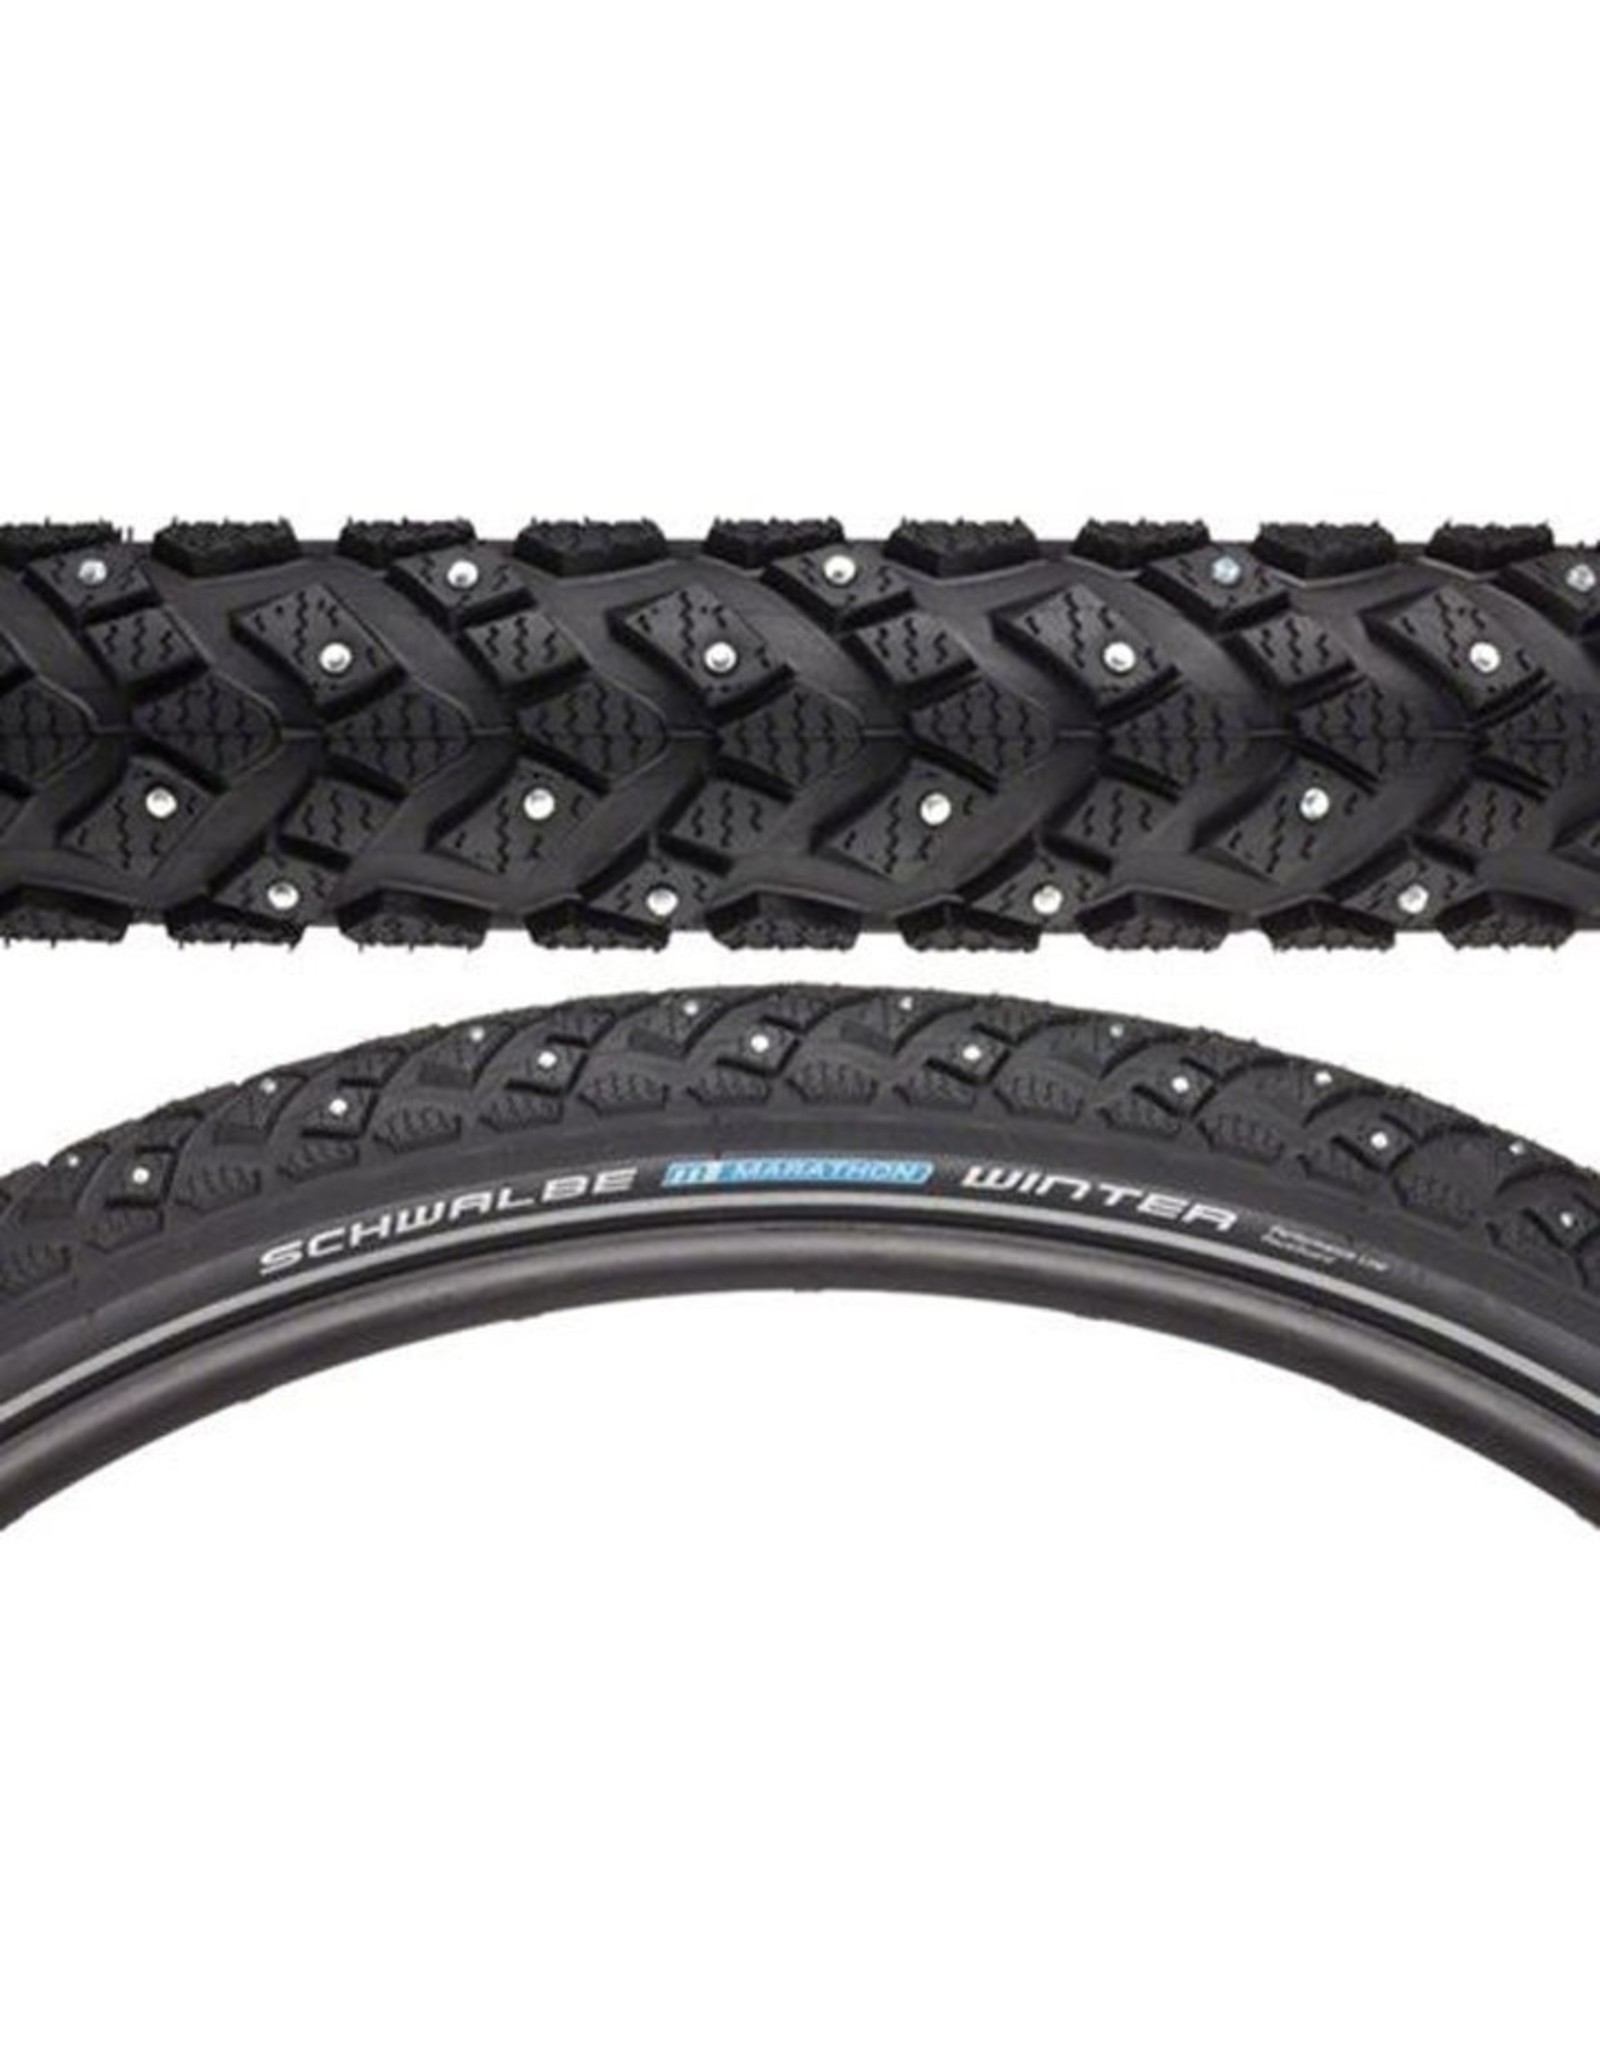 Schwalbe Schwalbe, Marathon Winter Plus, Pneu, 700x40C, Rigide, Tringle, Winter, SmartGuard, 67TPI, Noir